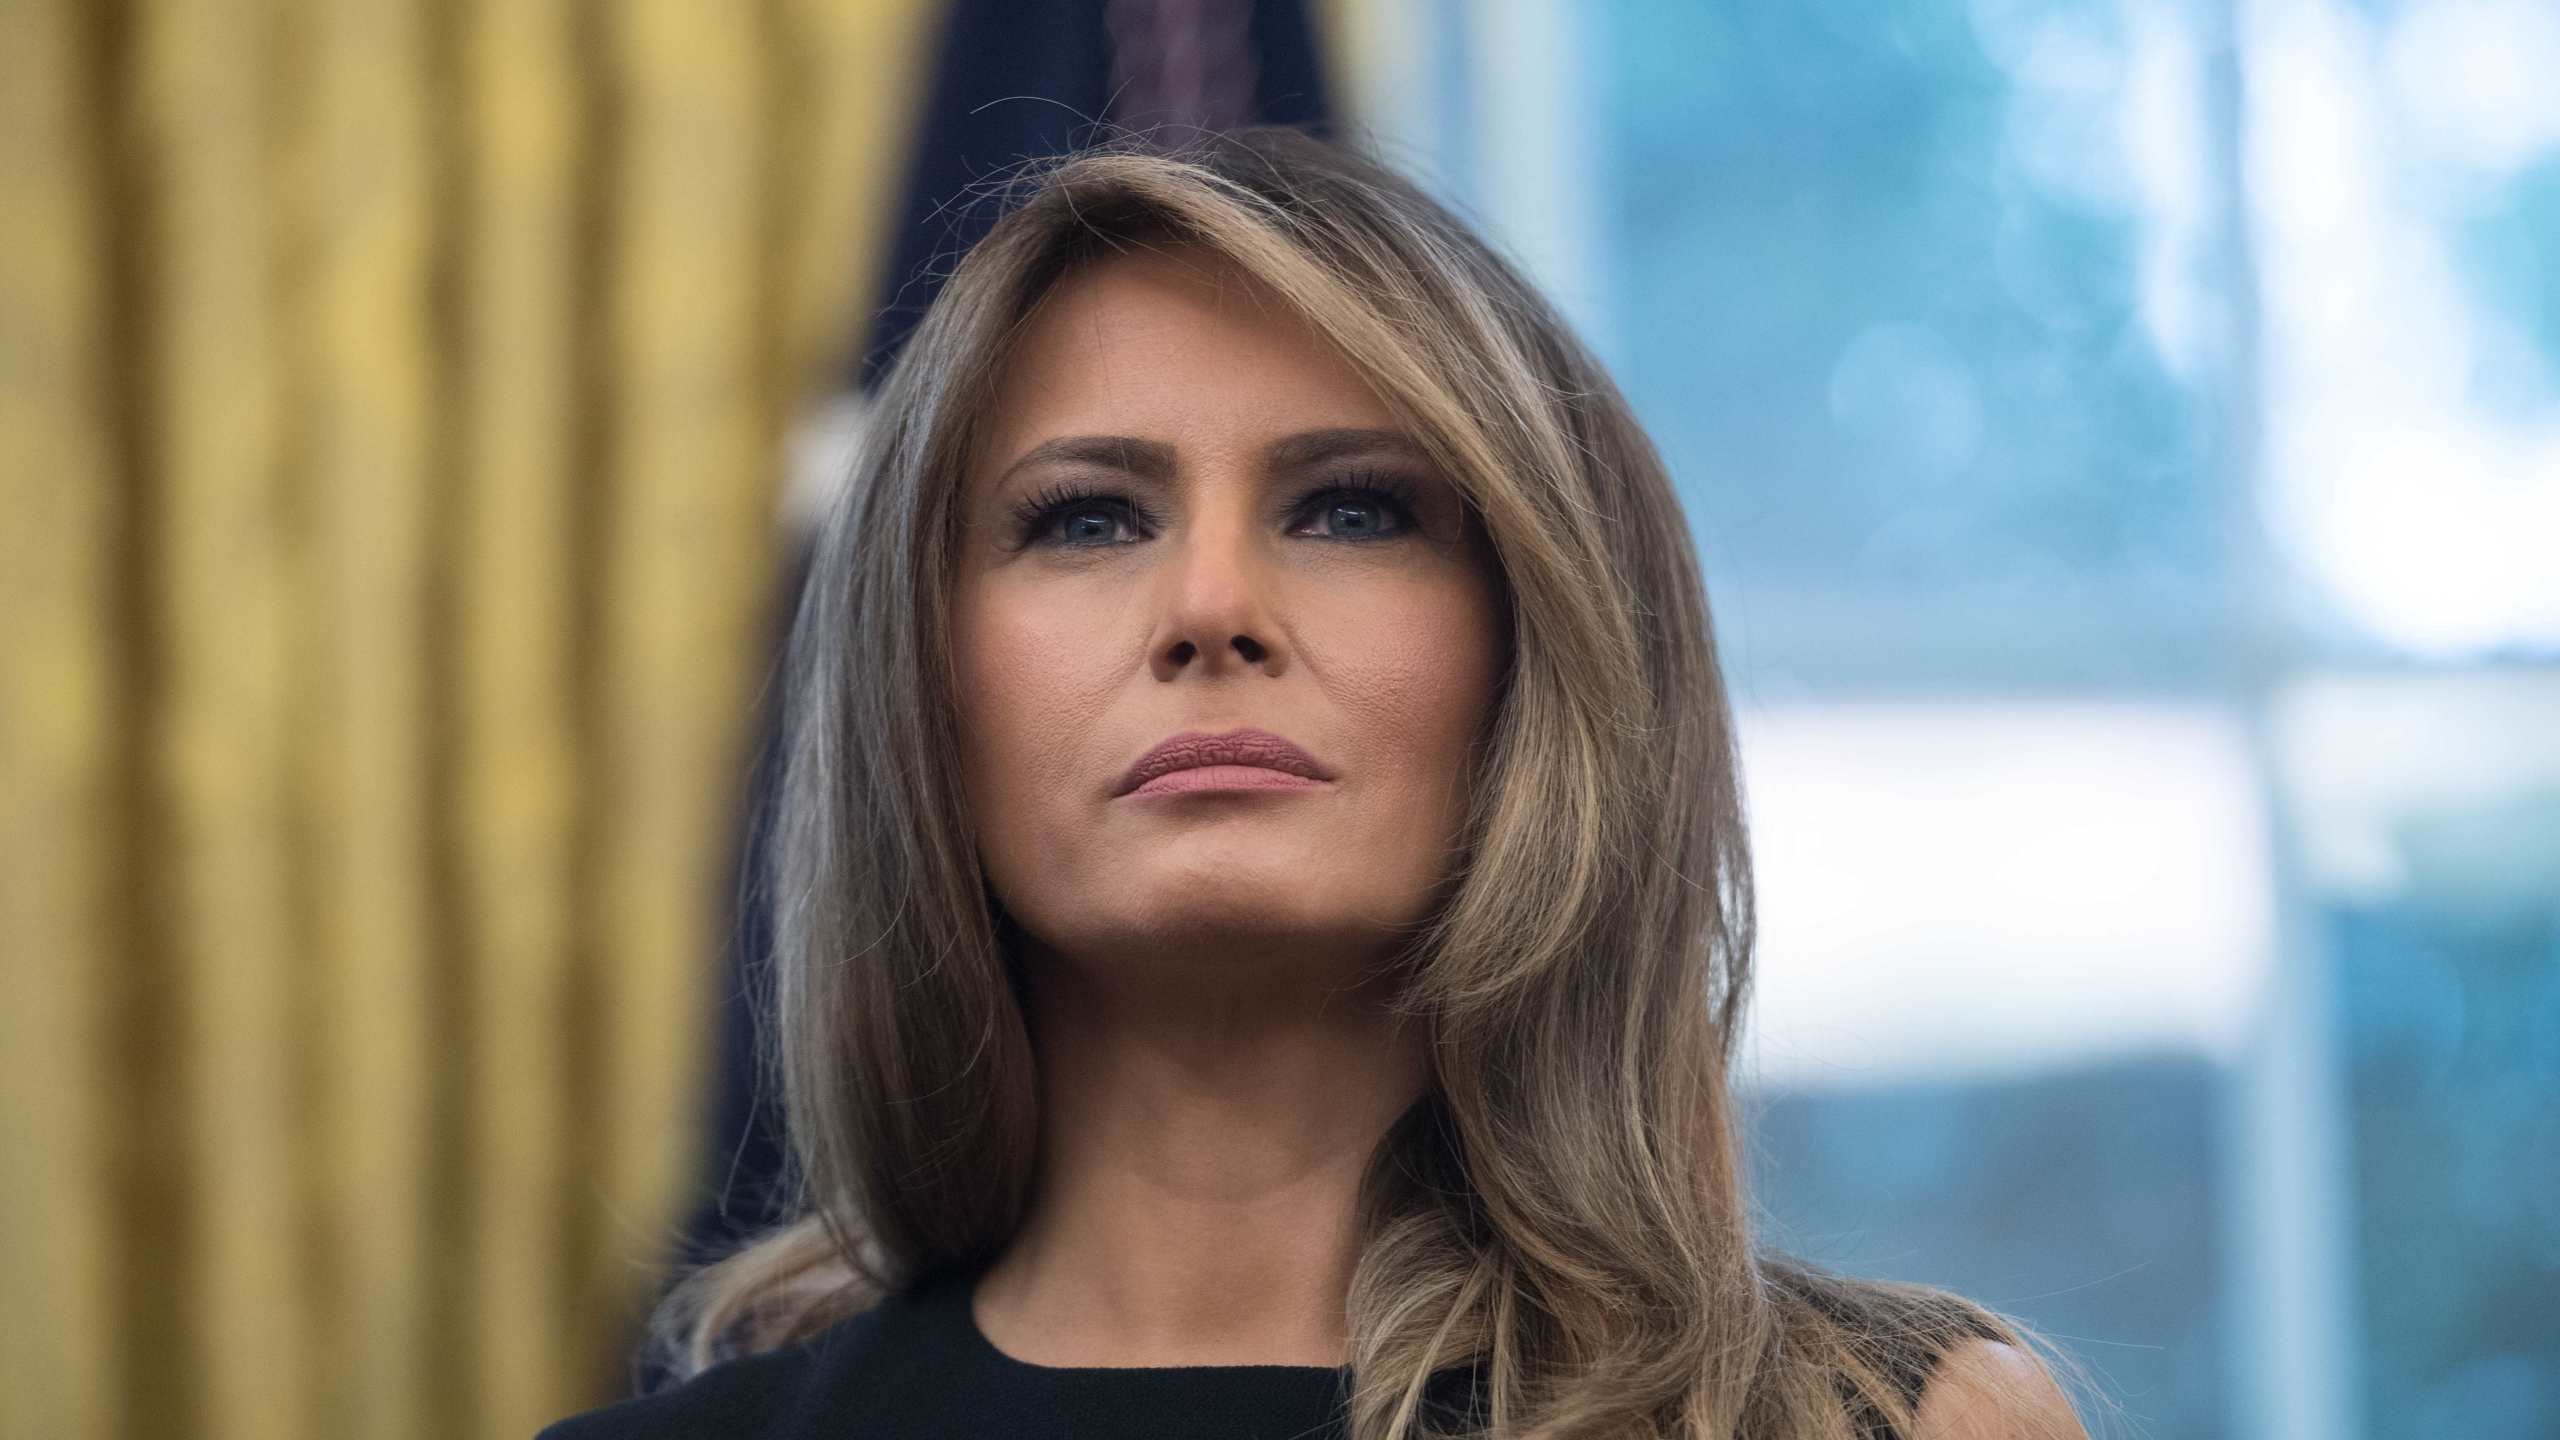 Melania Trump looks on as in the Oval Office at the White House on September 1, 2017. (NICHOLAS KAMM/AFP/Getty Images)